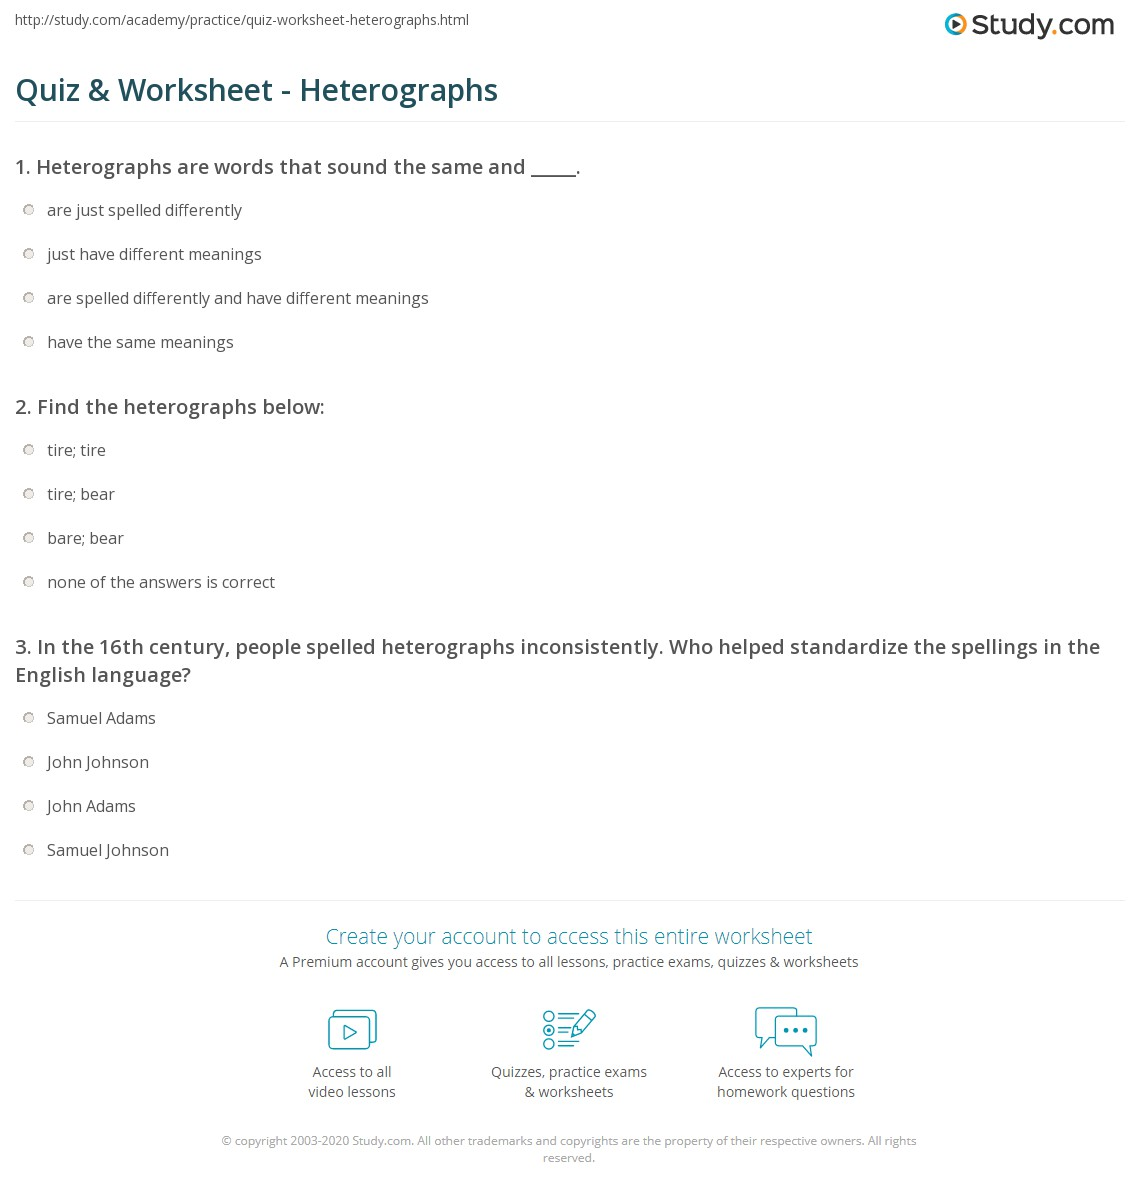 quiz worksheet heterographs com print heterographs definition examples worksheet